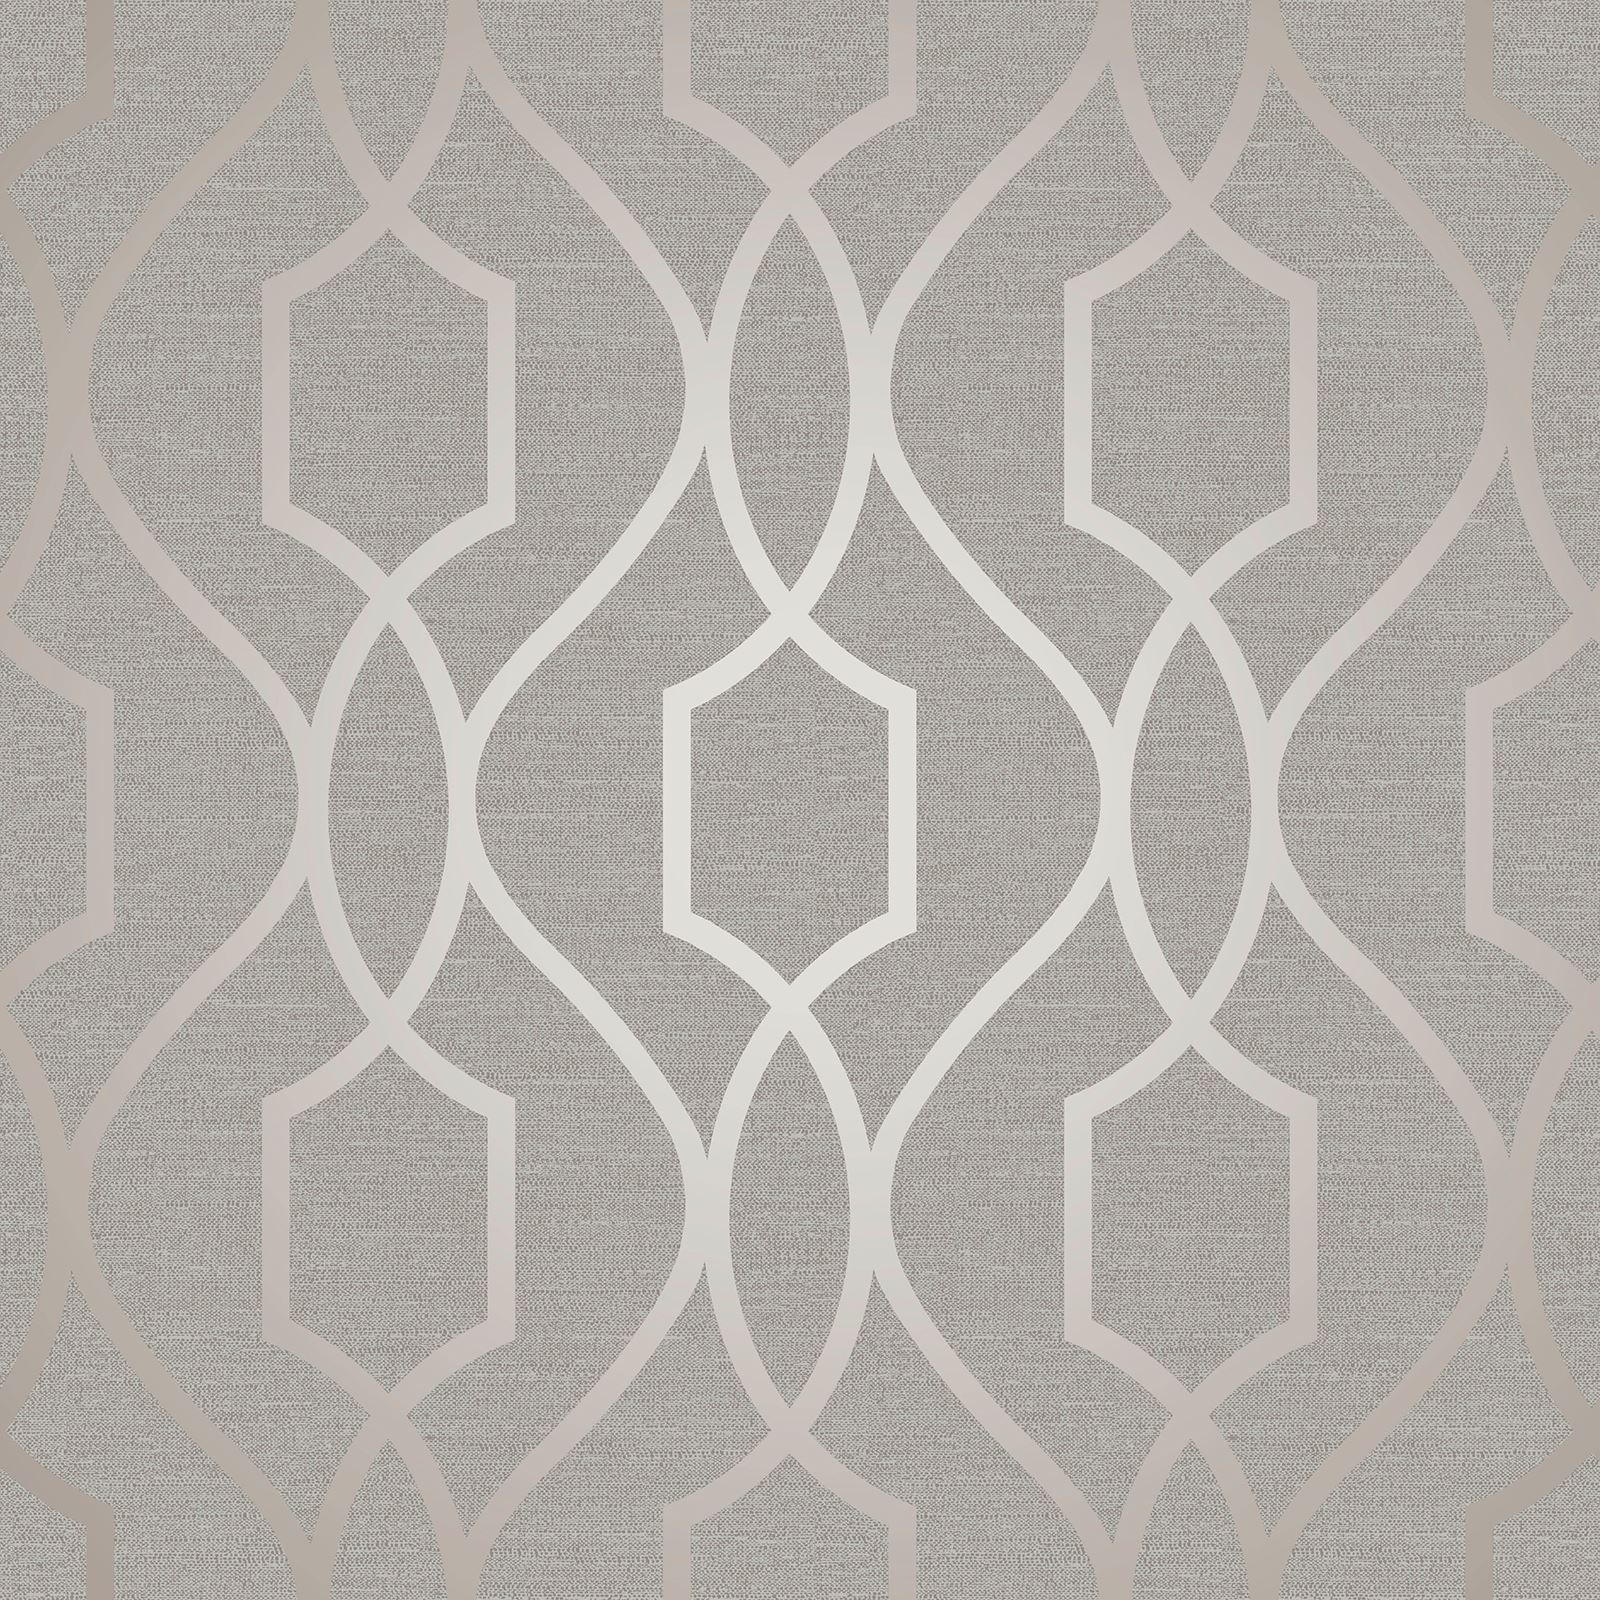 Fine Decor Apex Geometric Trellis Wallpaper Stone Grey